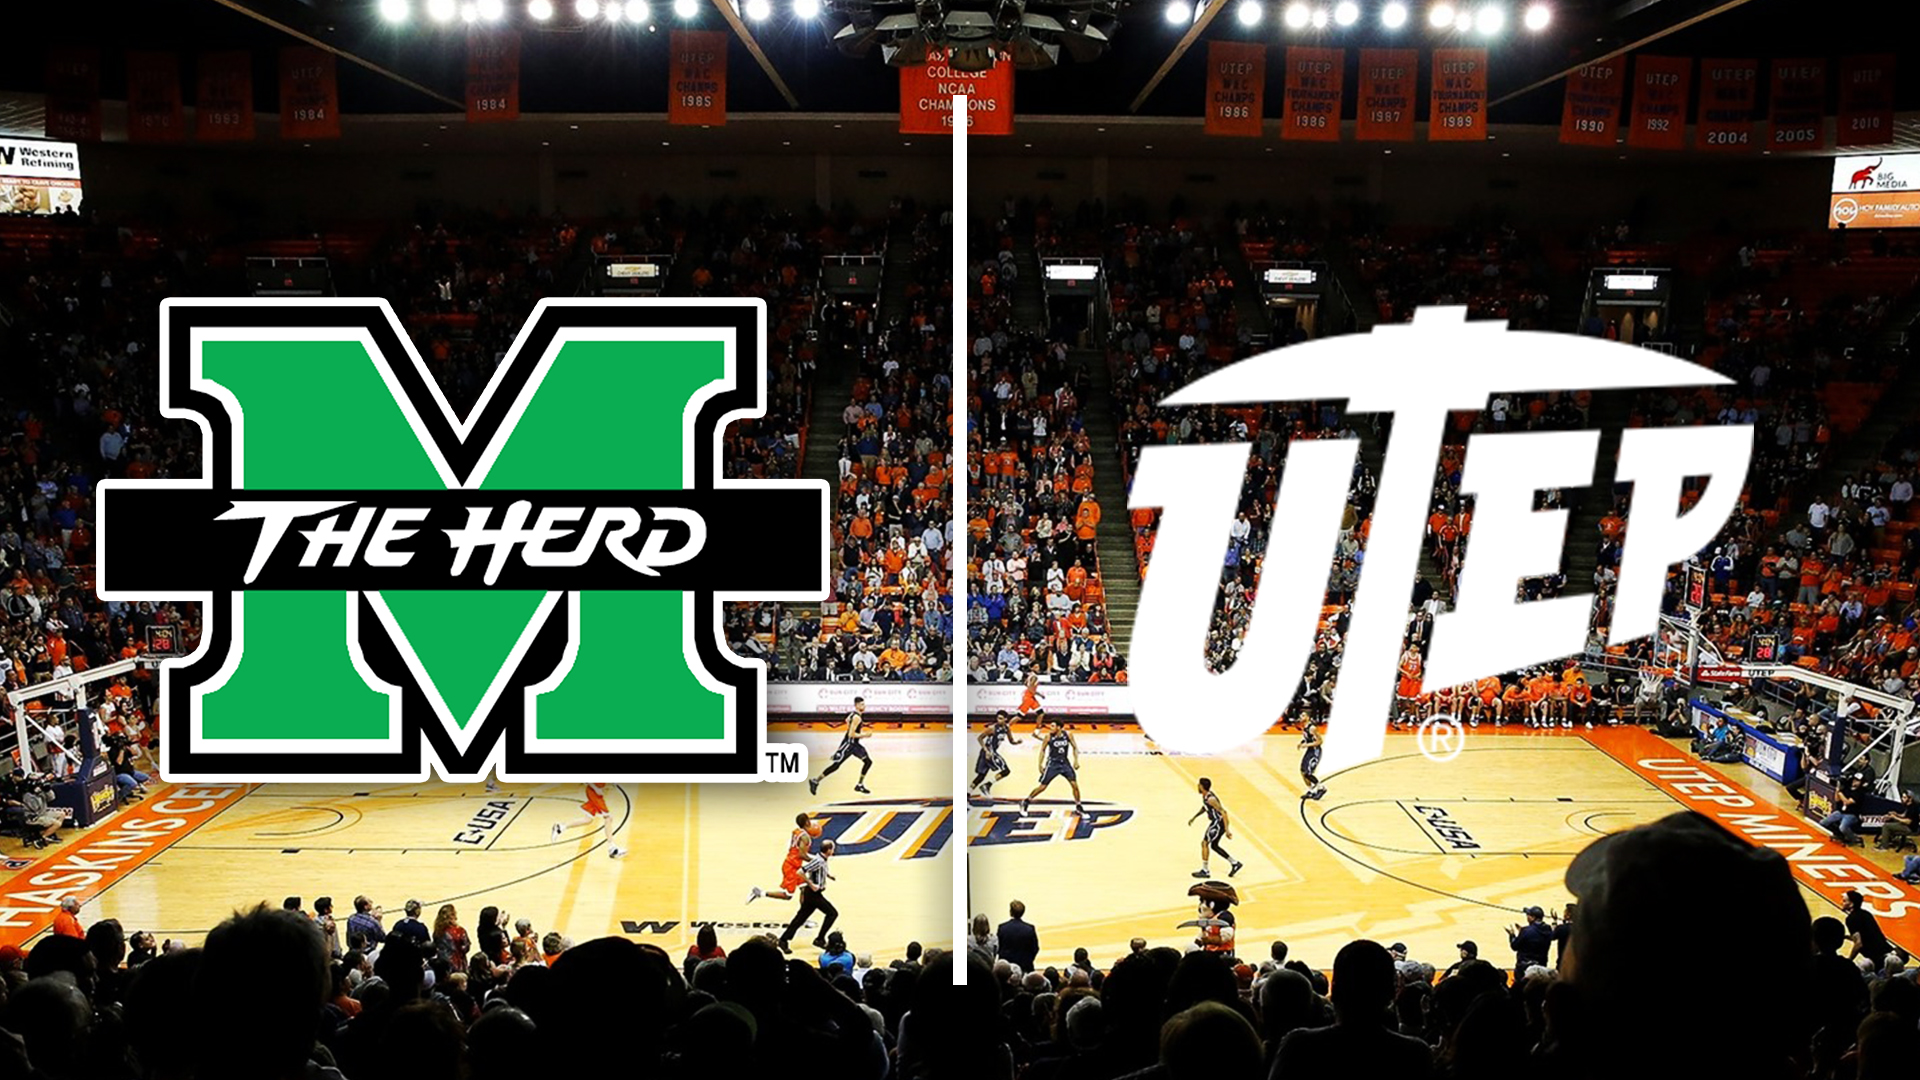 Herd Completes Season's First Texas Two Step